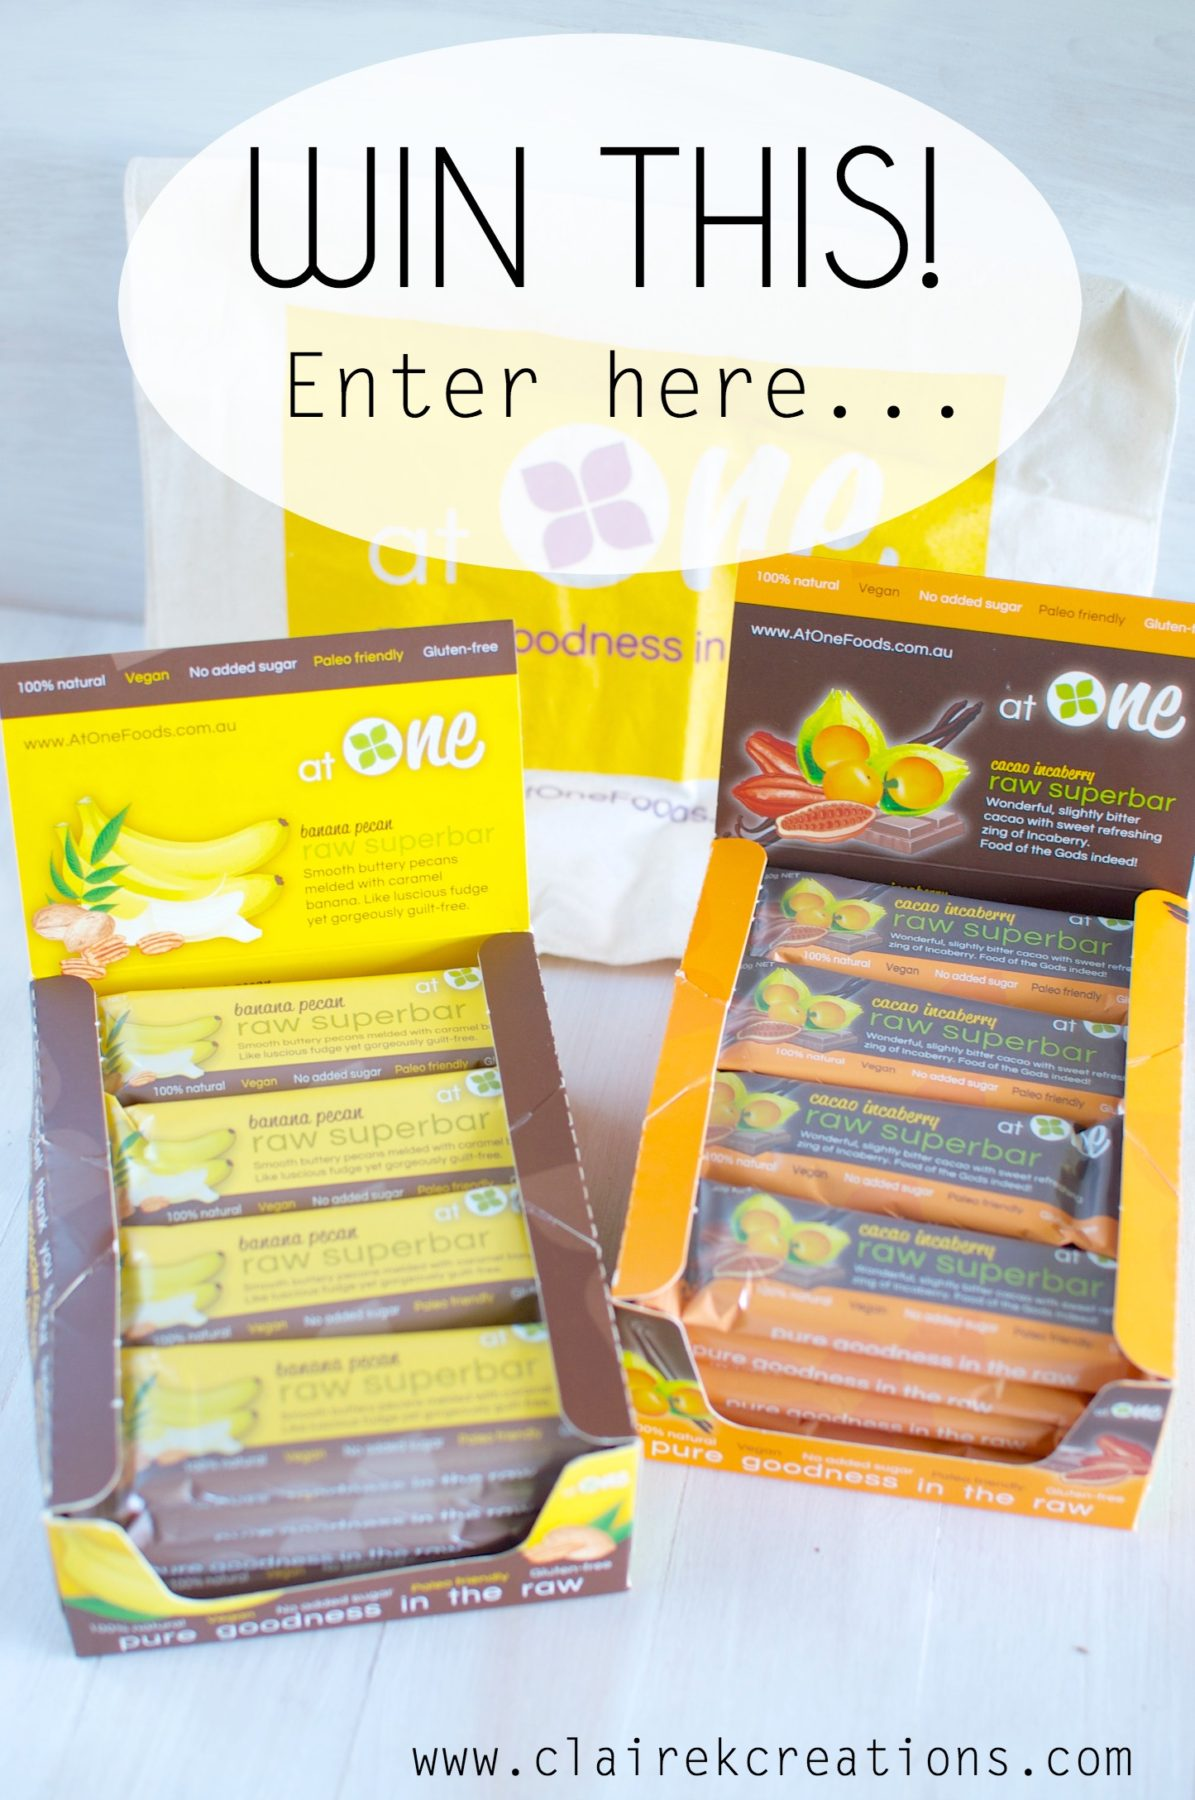 Delicous, healthy, raw snack bars and a competition